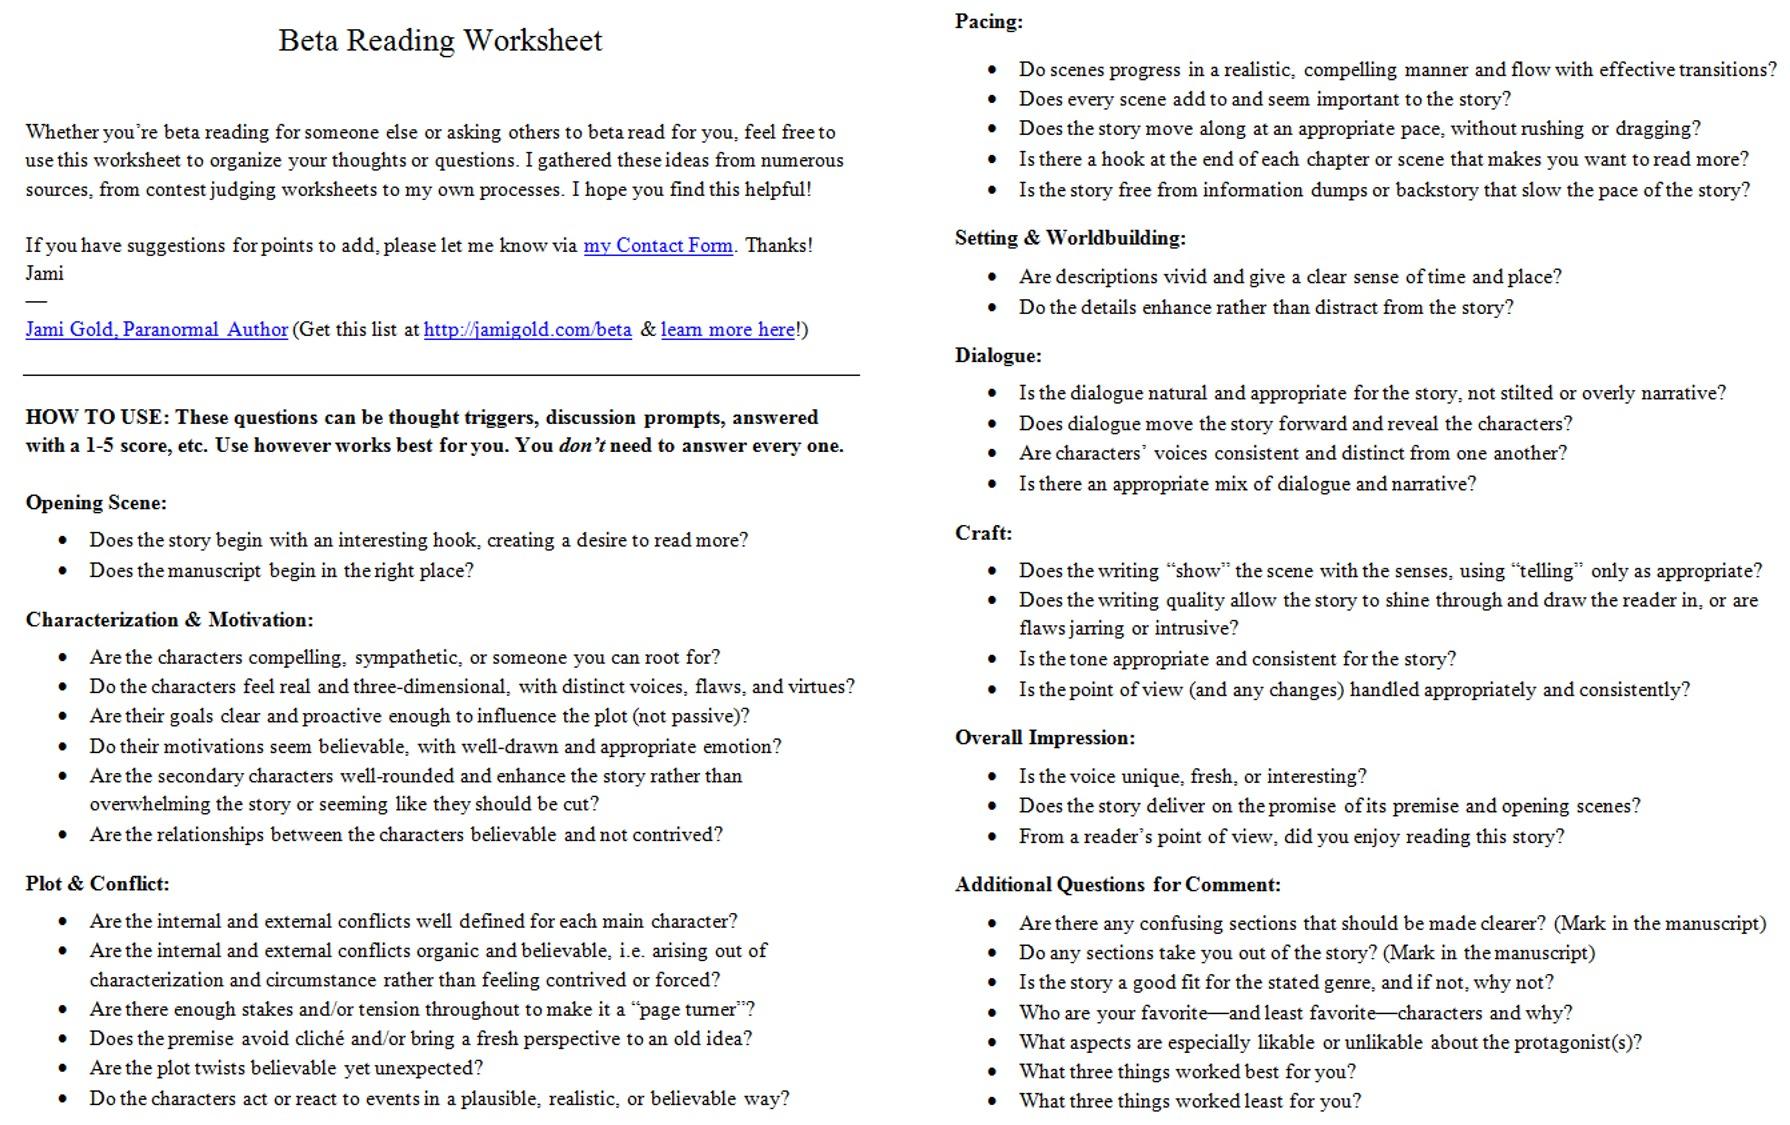 Aldiablosus  Unusual Worksheets For Writers  Jami Gold Paranormal Author With Magnificent Screen Shot Of The Twopage Beta Reading Worksheet With Nice Rd Grade Math Fraction Worksheets Also Cutting Skills Worksheets In Addition Stratigraphy Worksheet And G Worksheet As Well As Simplifying Rational Expressions Worksheets Additionally Cub Scout Worksheets From Jamigoldcom With Aldiablosus  Magnificent Worksheets For Writers  Jami Gold Paranormal Author With Nice Screen Shot Of The Twopage Beta Reading Worksheet And Unusual Rd Grade Math Fraction Worksheets Also Cutting Skills Worksheets In Addition Stratigraphy Worksheet From Jamigoldcom